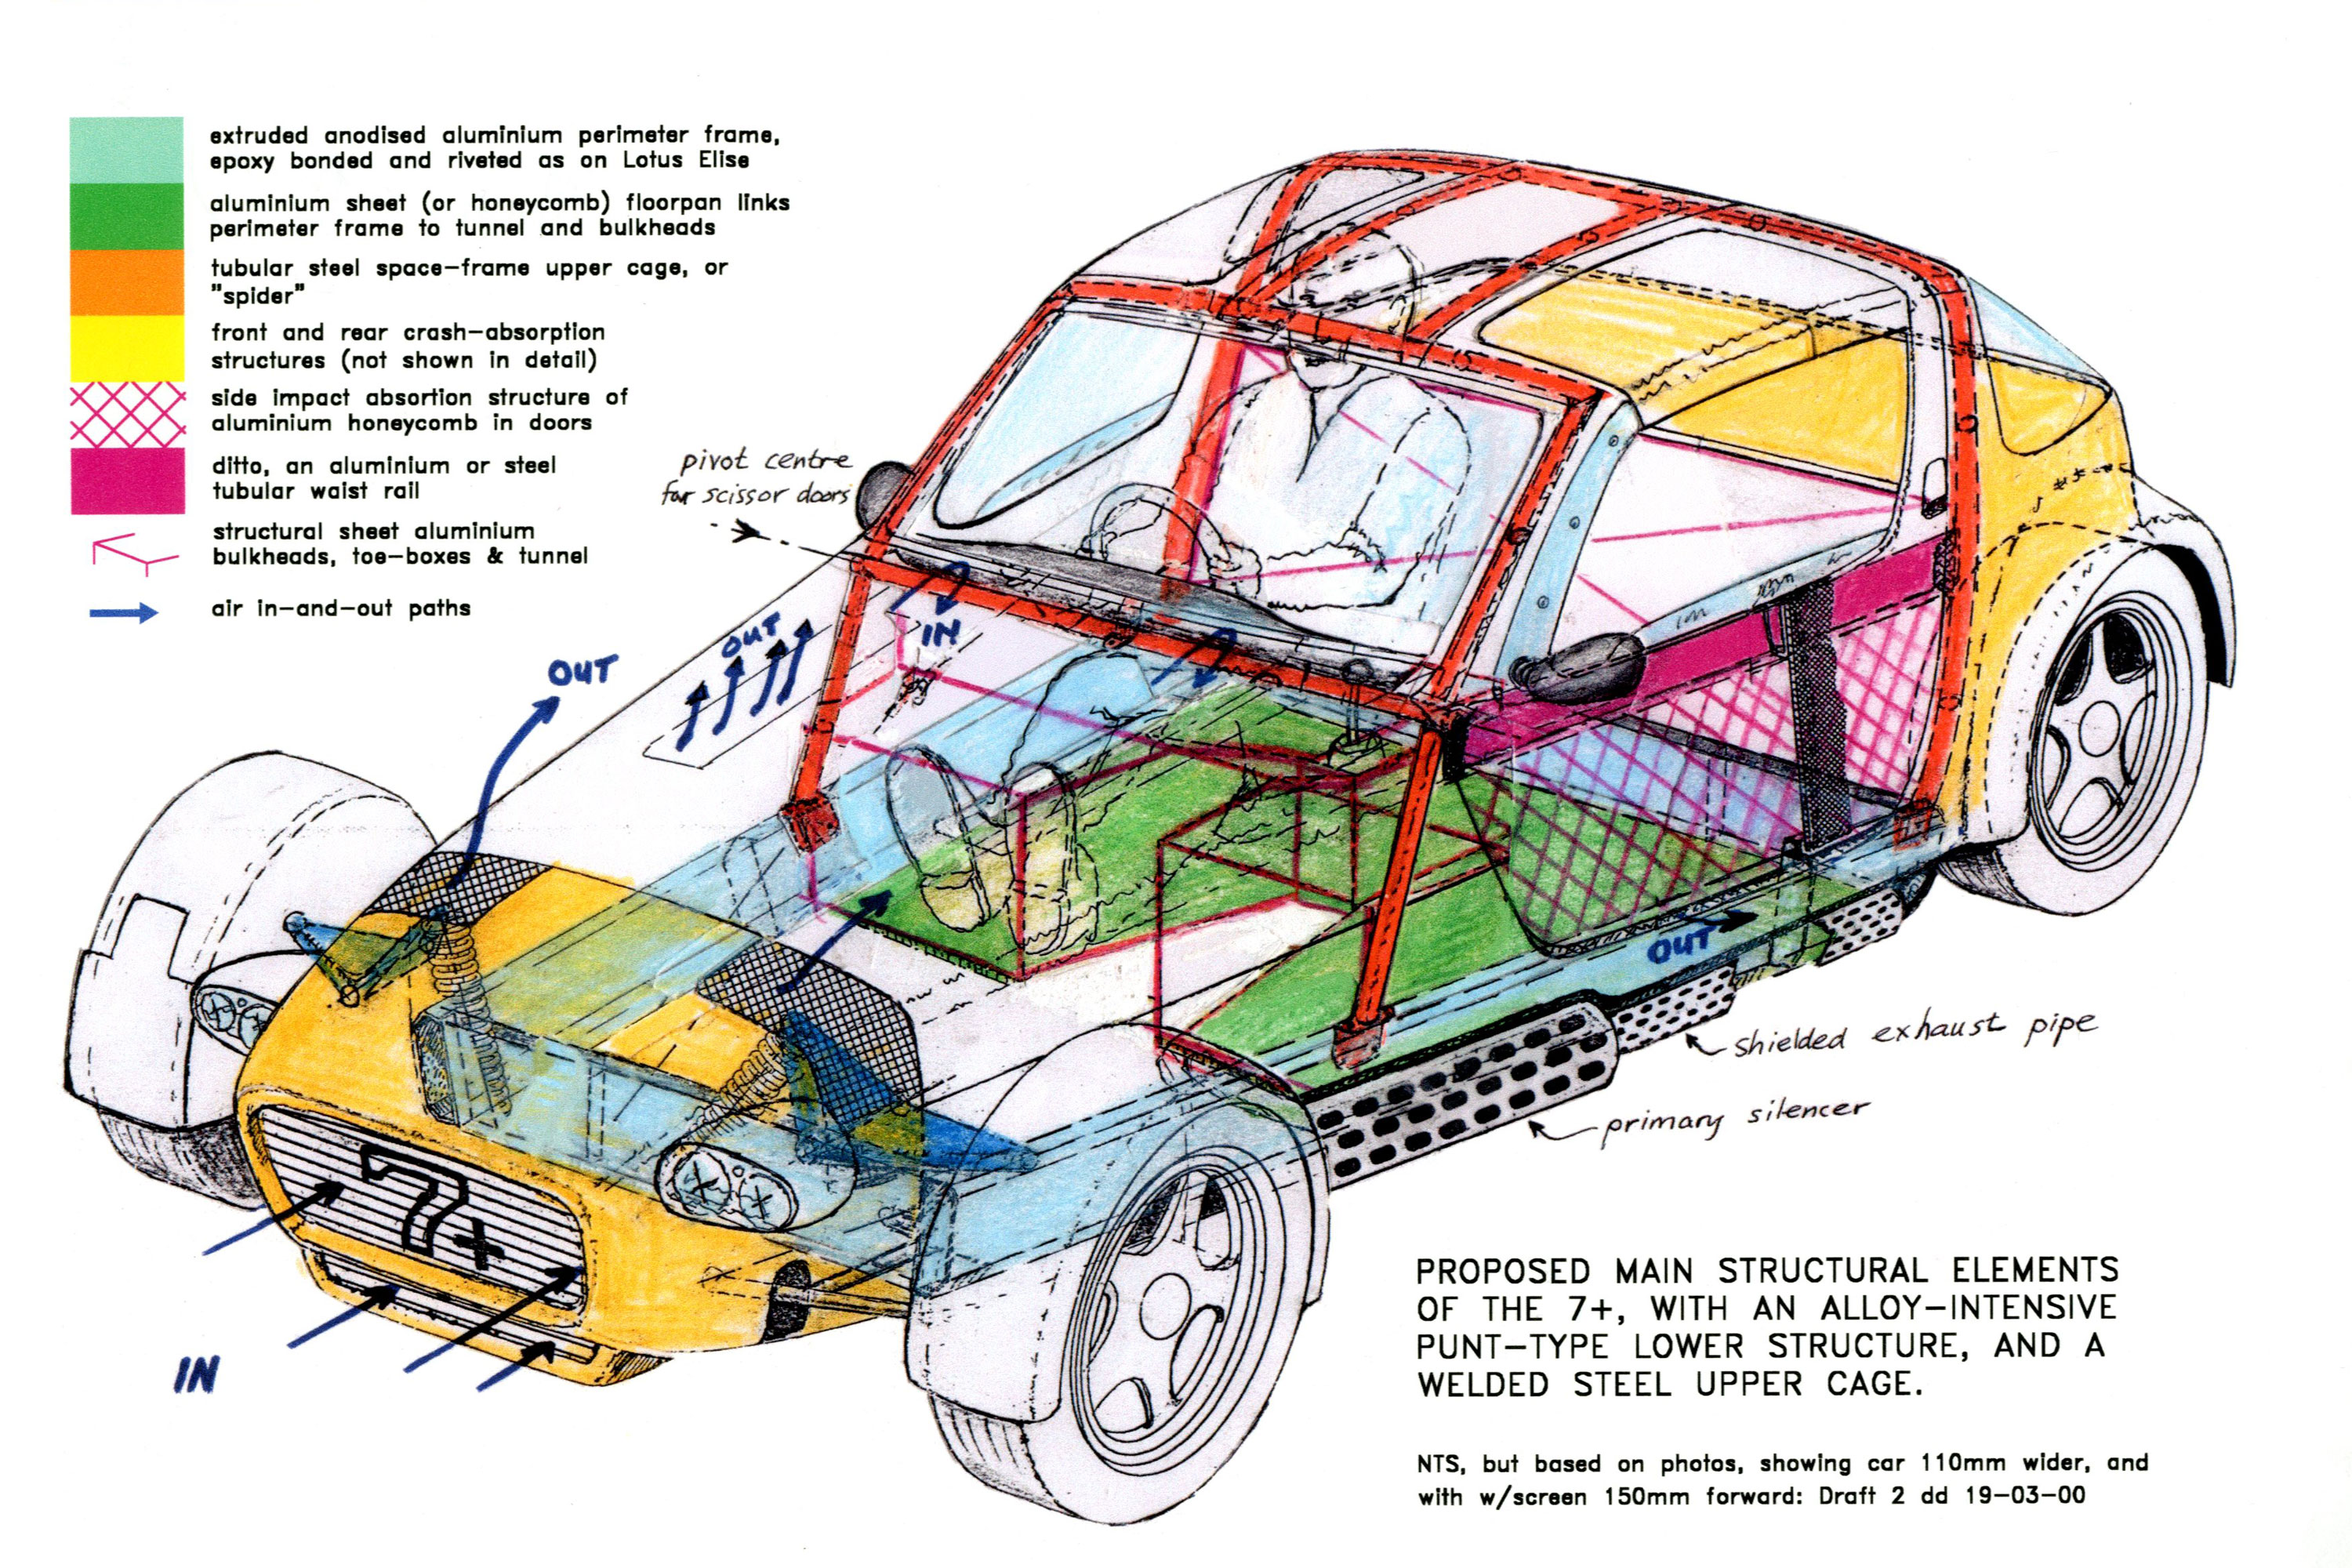 Caterham 7+ design sketch